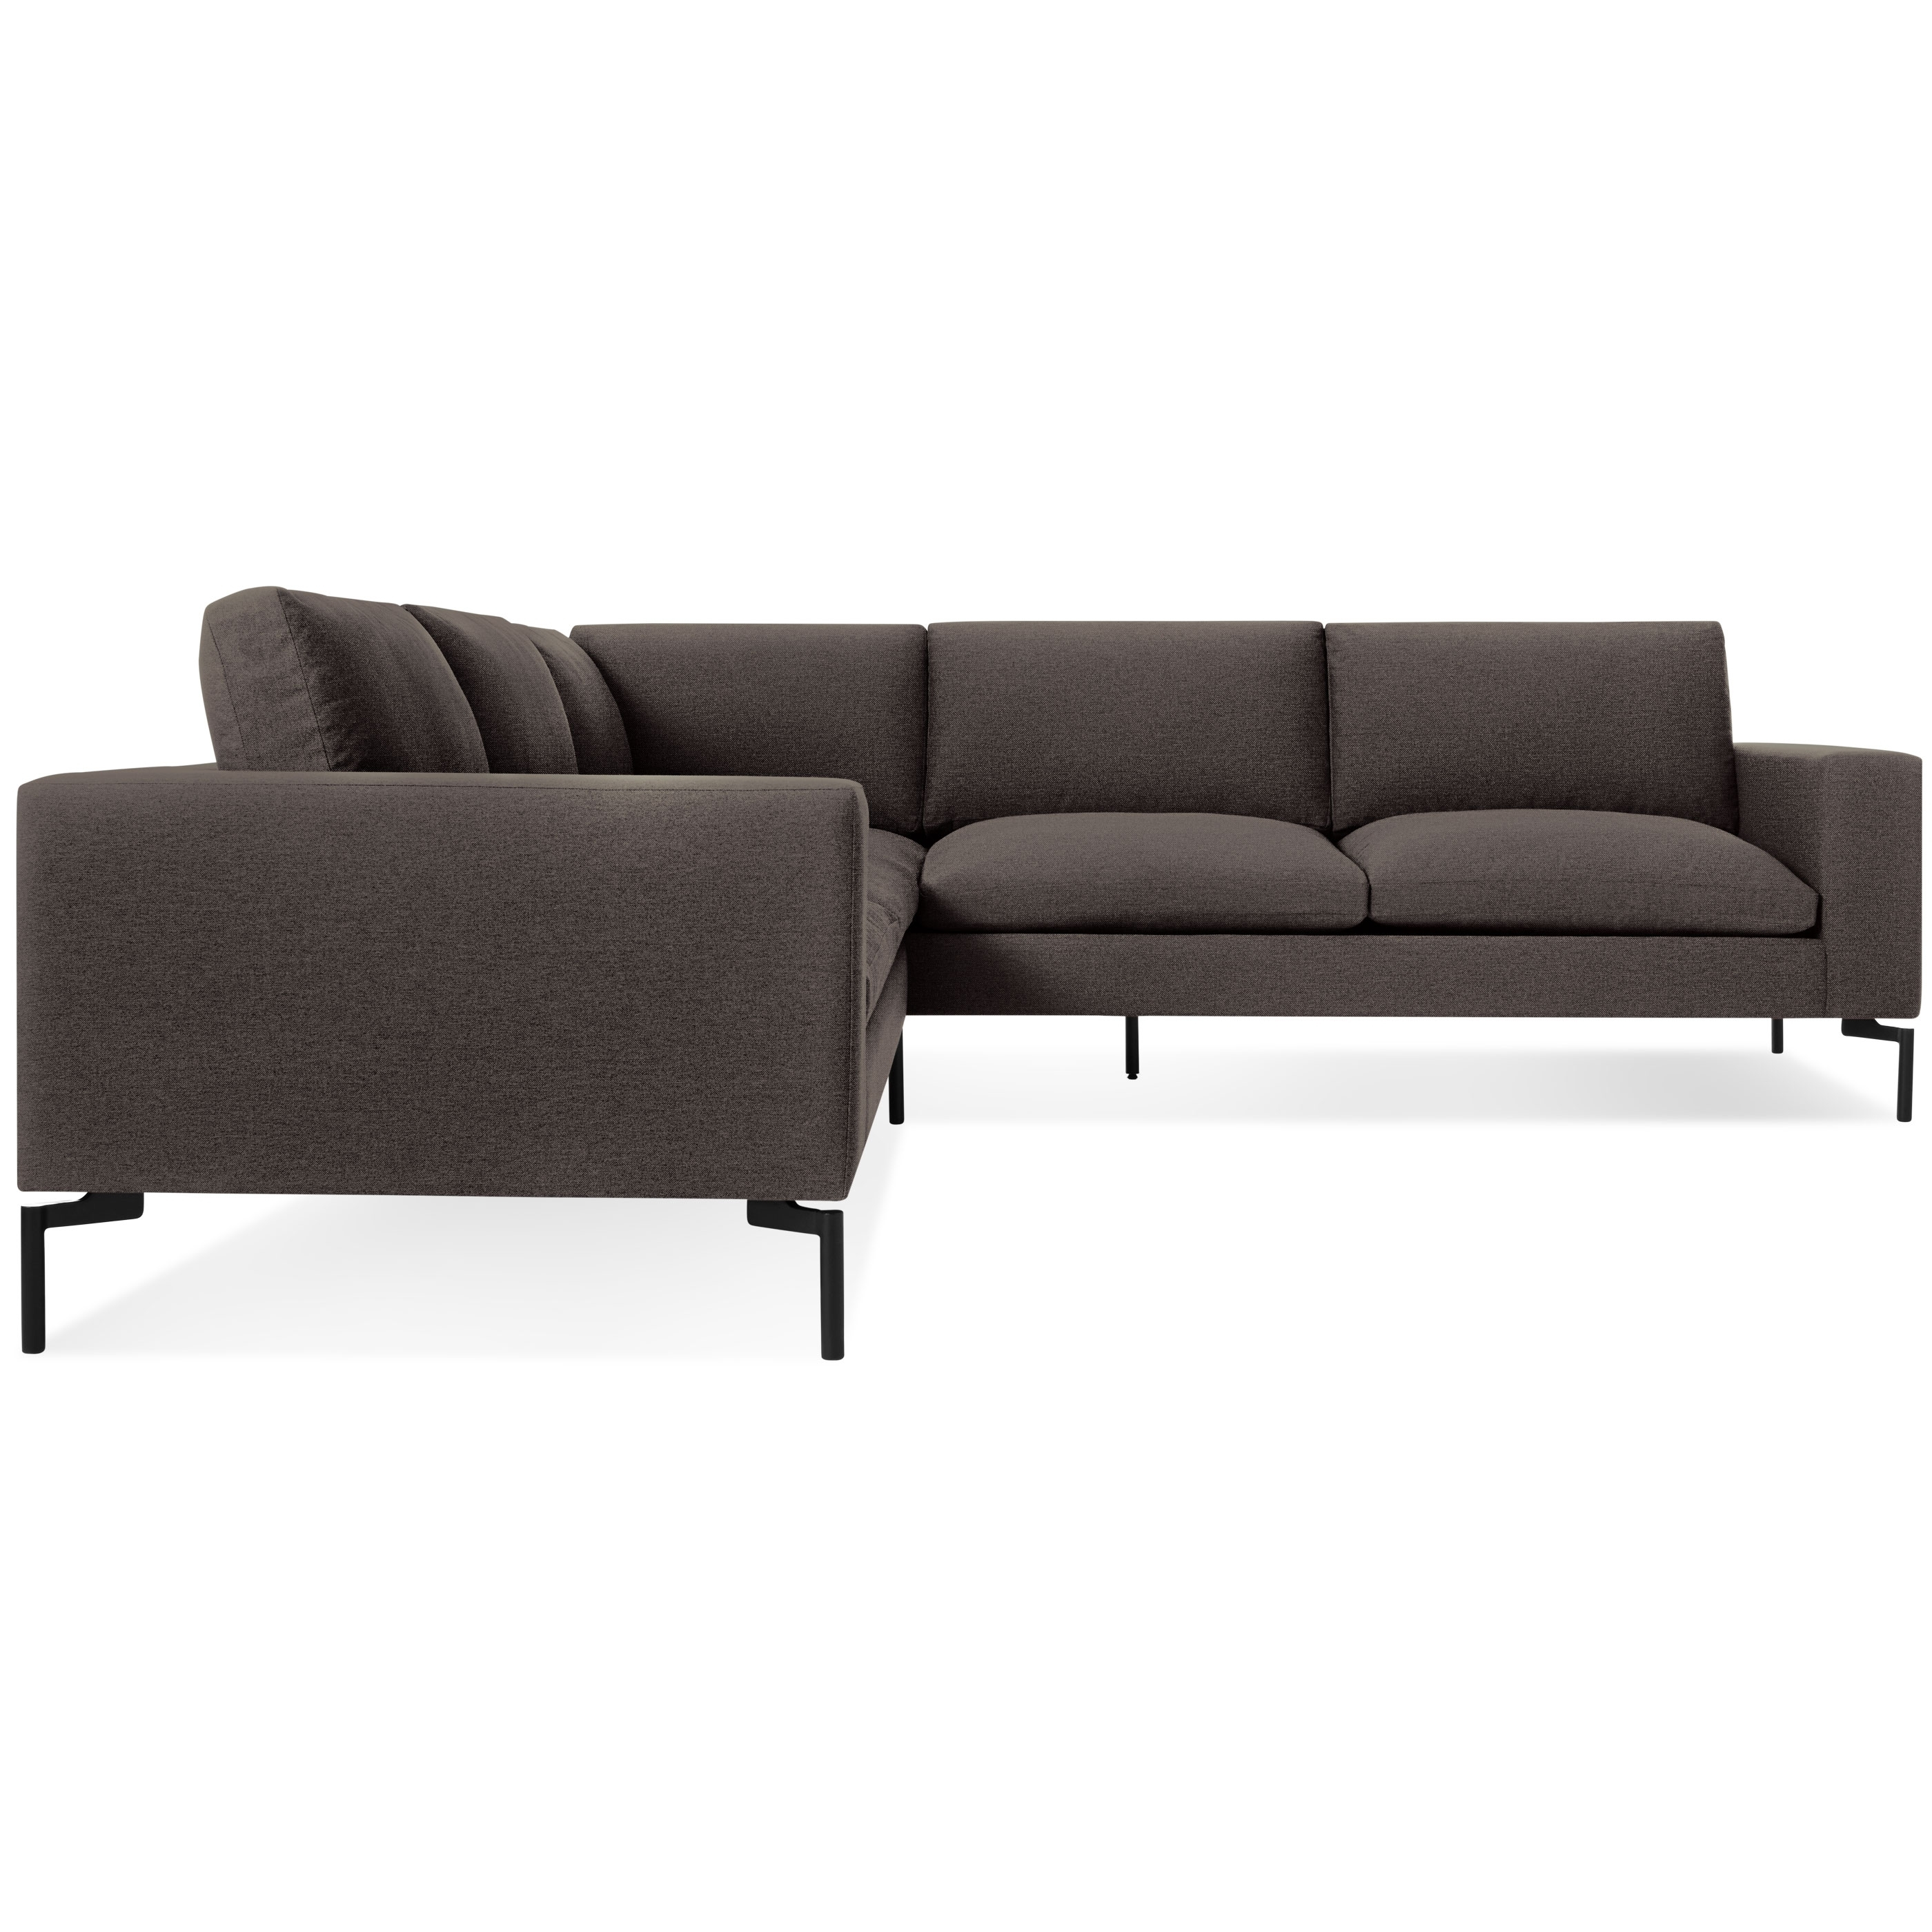 New Standard Small Sectional Sofa – Modern Sofas | Blu Dot Throughout Newfoundland Sectional Sofas (View 8 of 10)